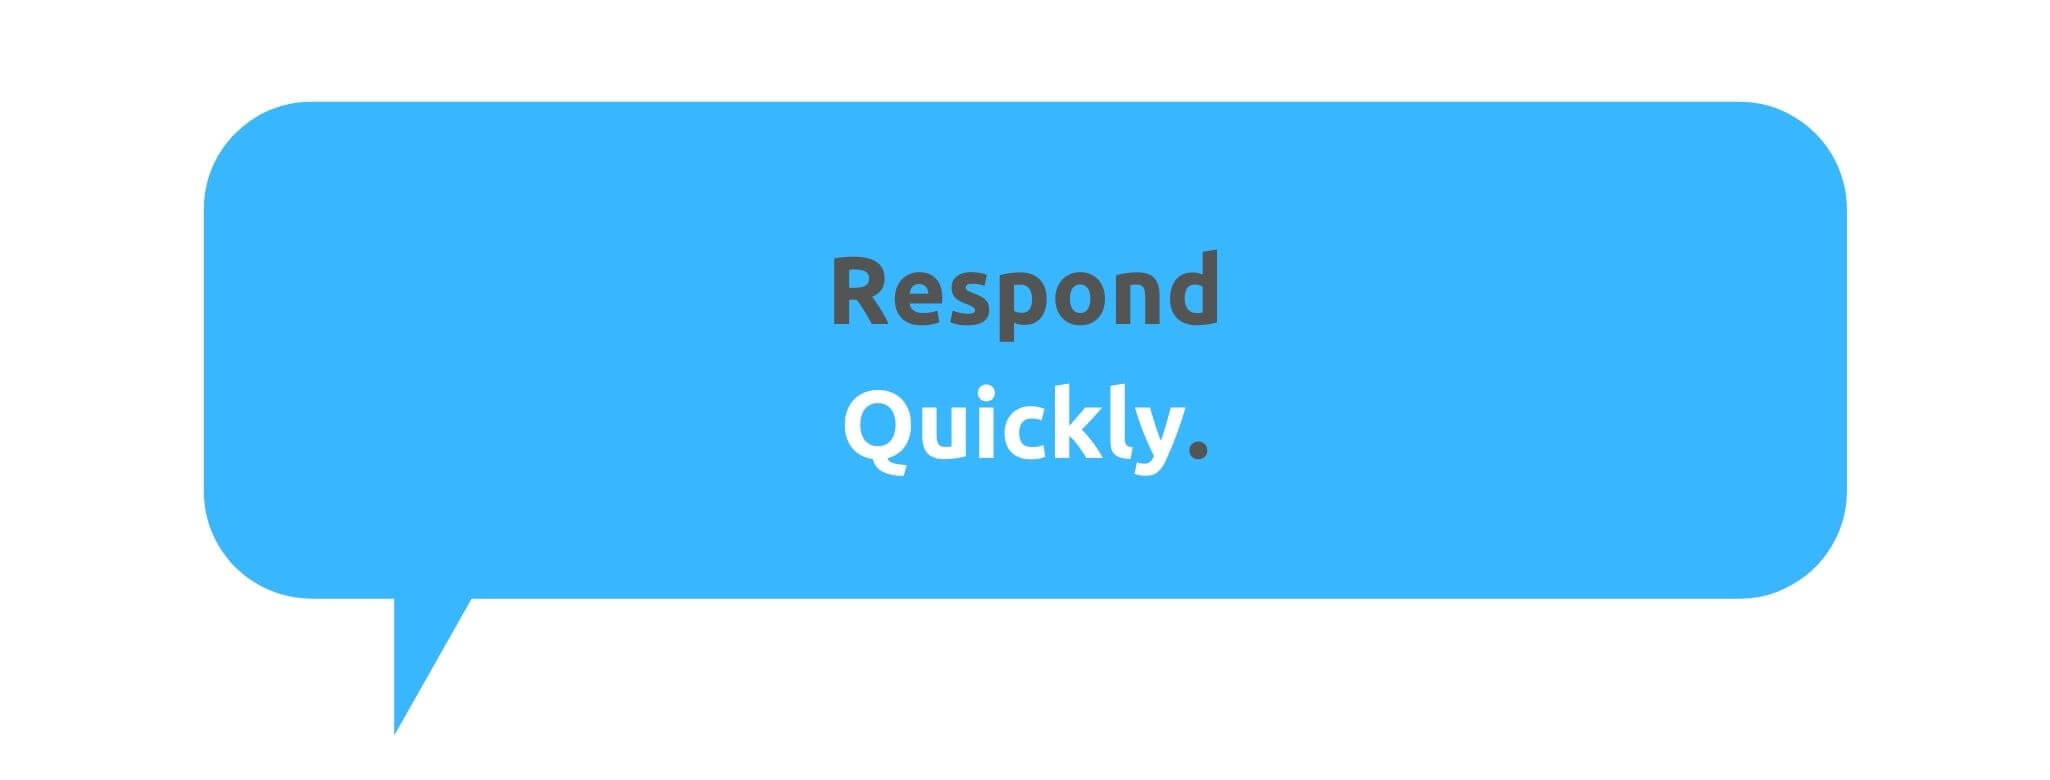 Respond Quickly - How to Run a Customer-Centric Business - Replyco Helpdesk Software for eCommerce